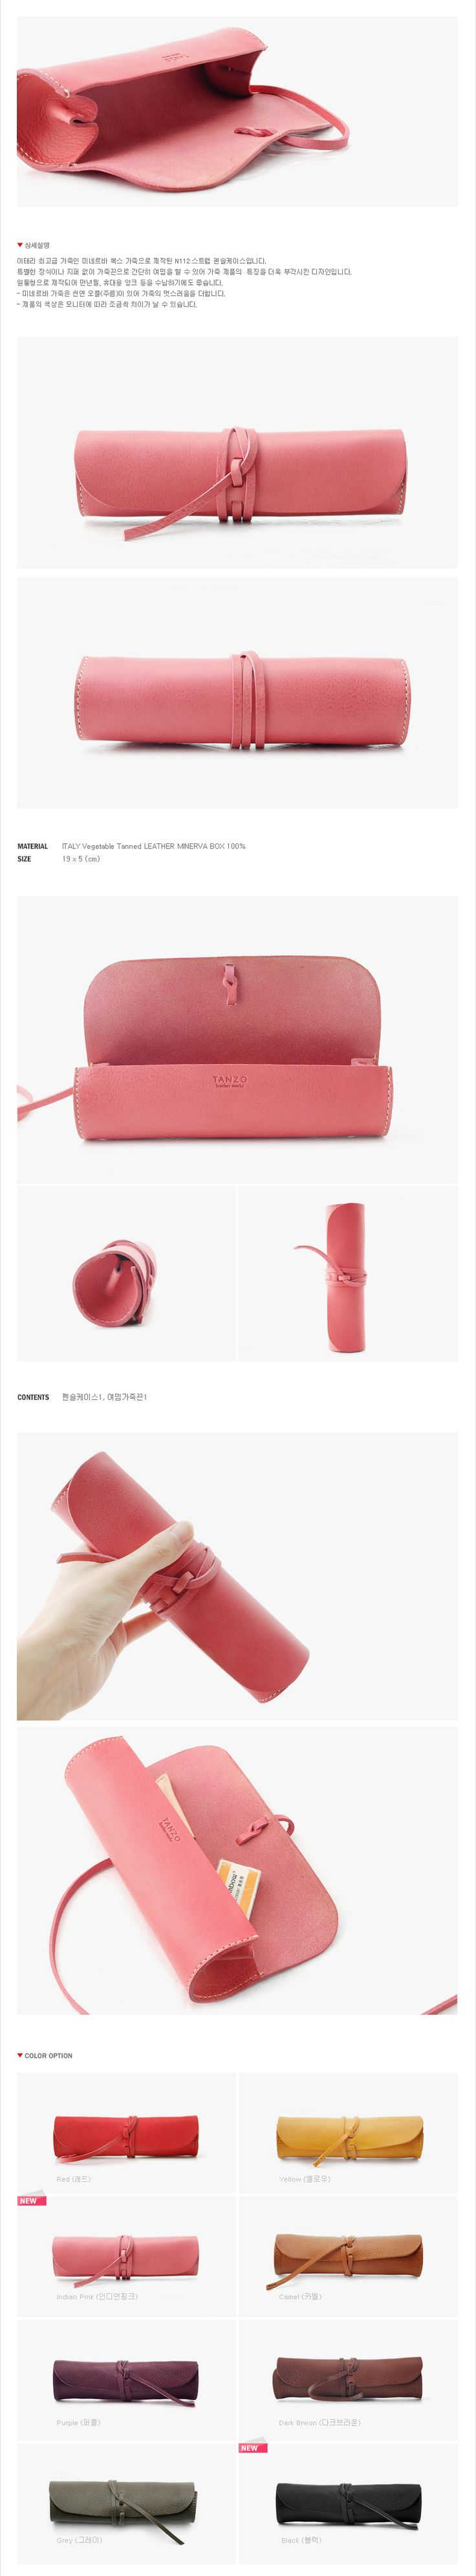 TANZO pencil case